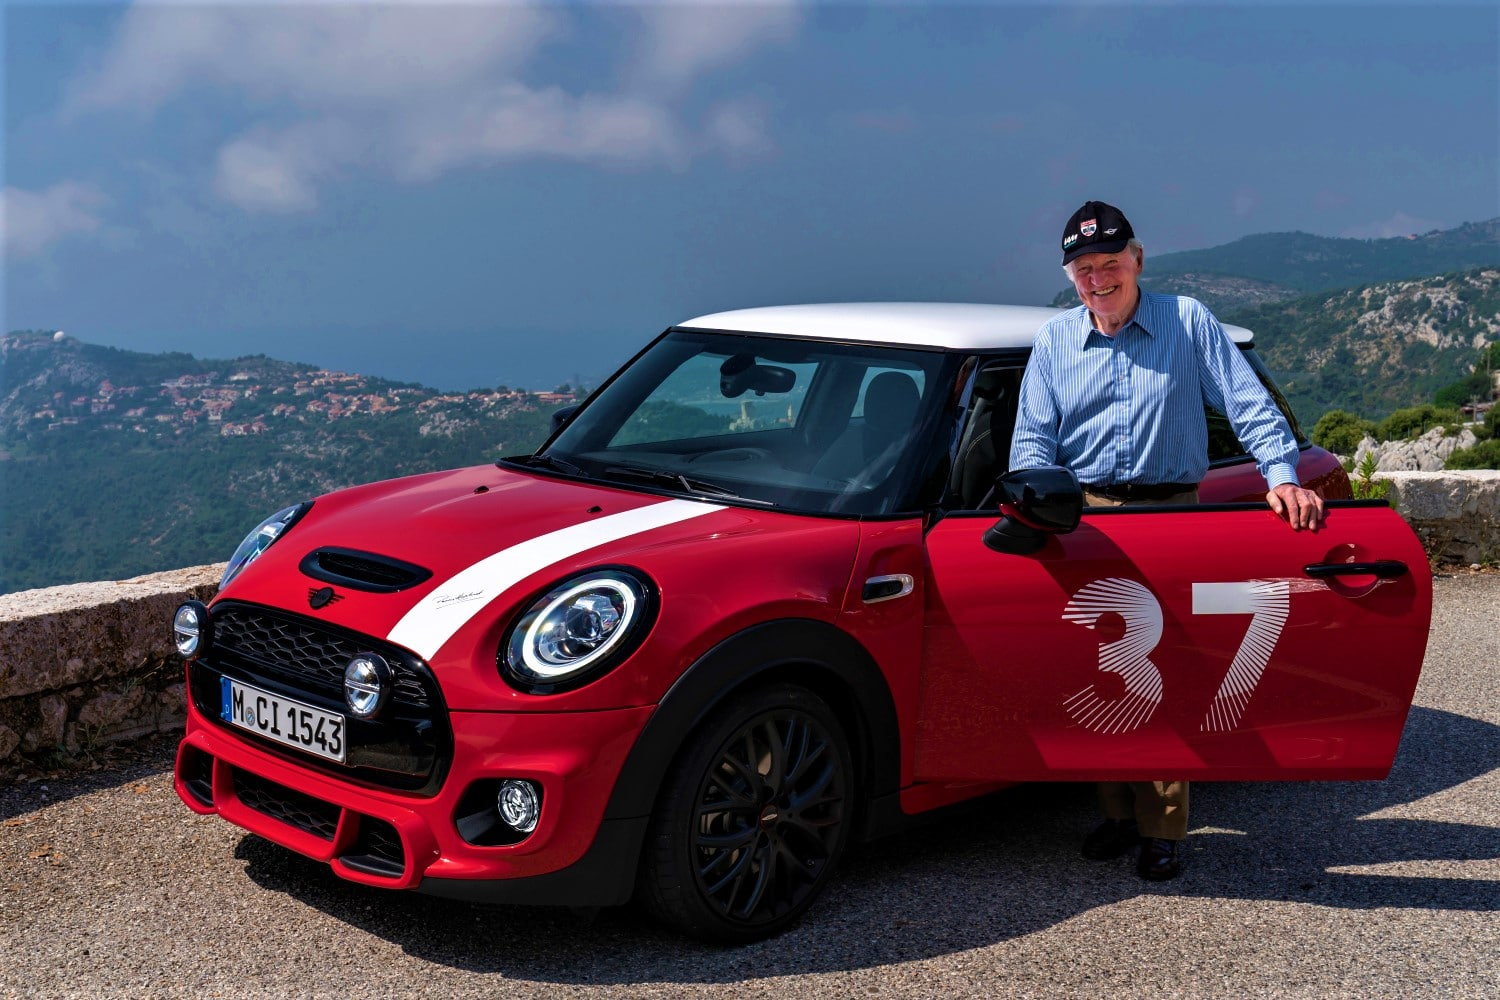 Number 37 back on the starting line; MINI launches Paddy Hopkirk Edition